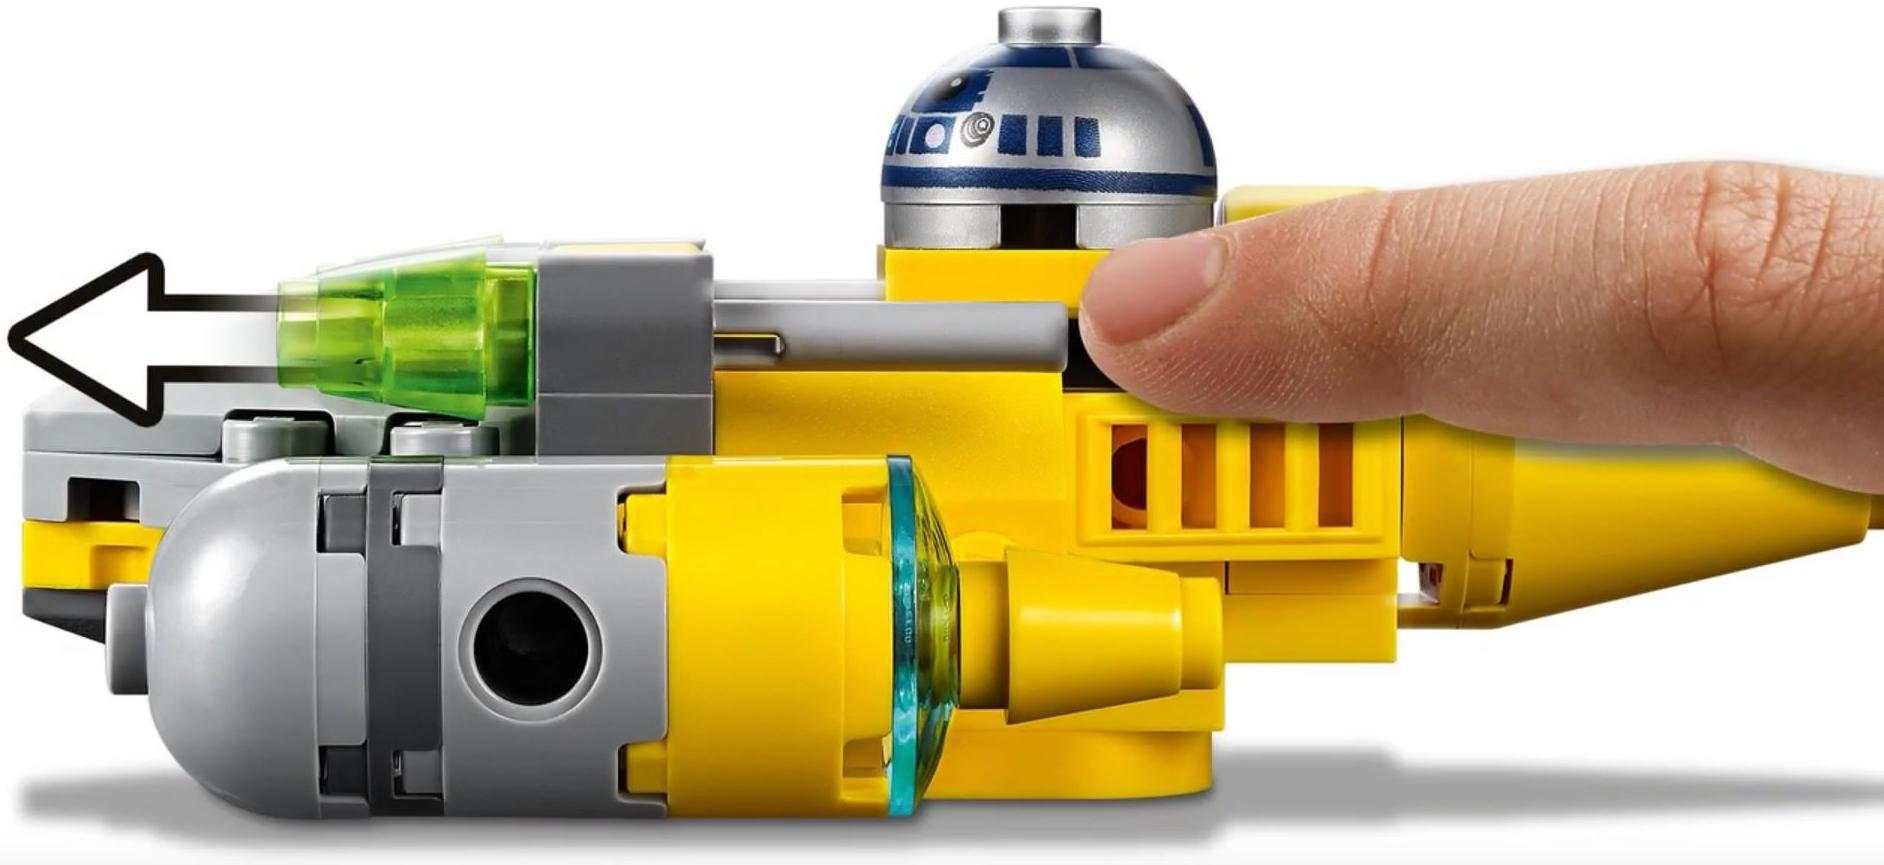 75223 Naboo Starfighter Microfighter Playable Functions